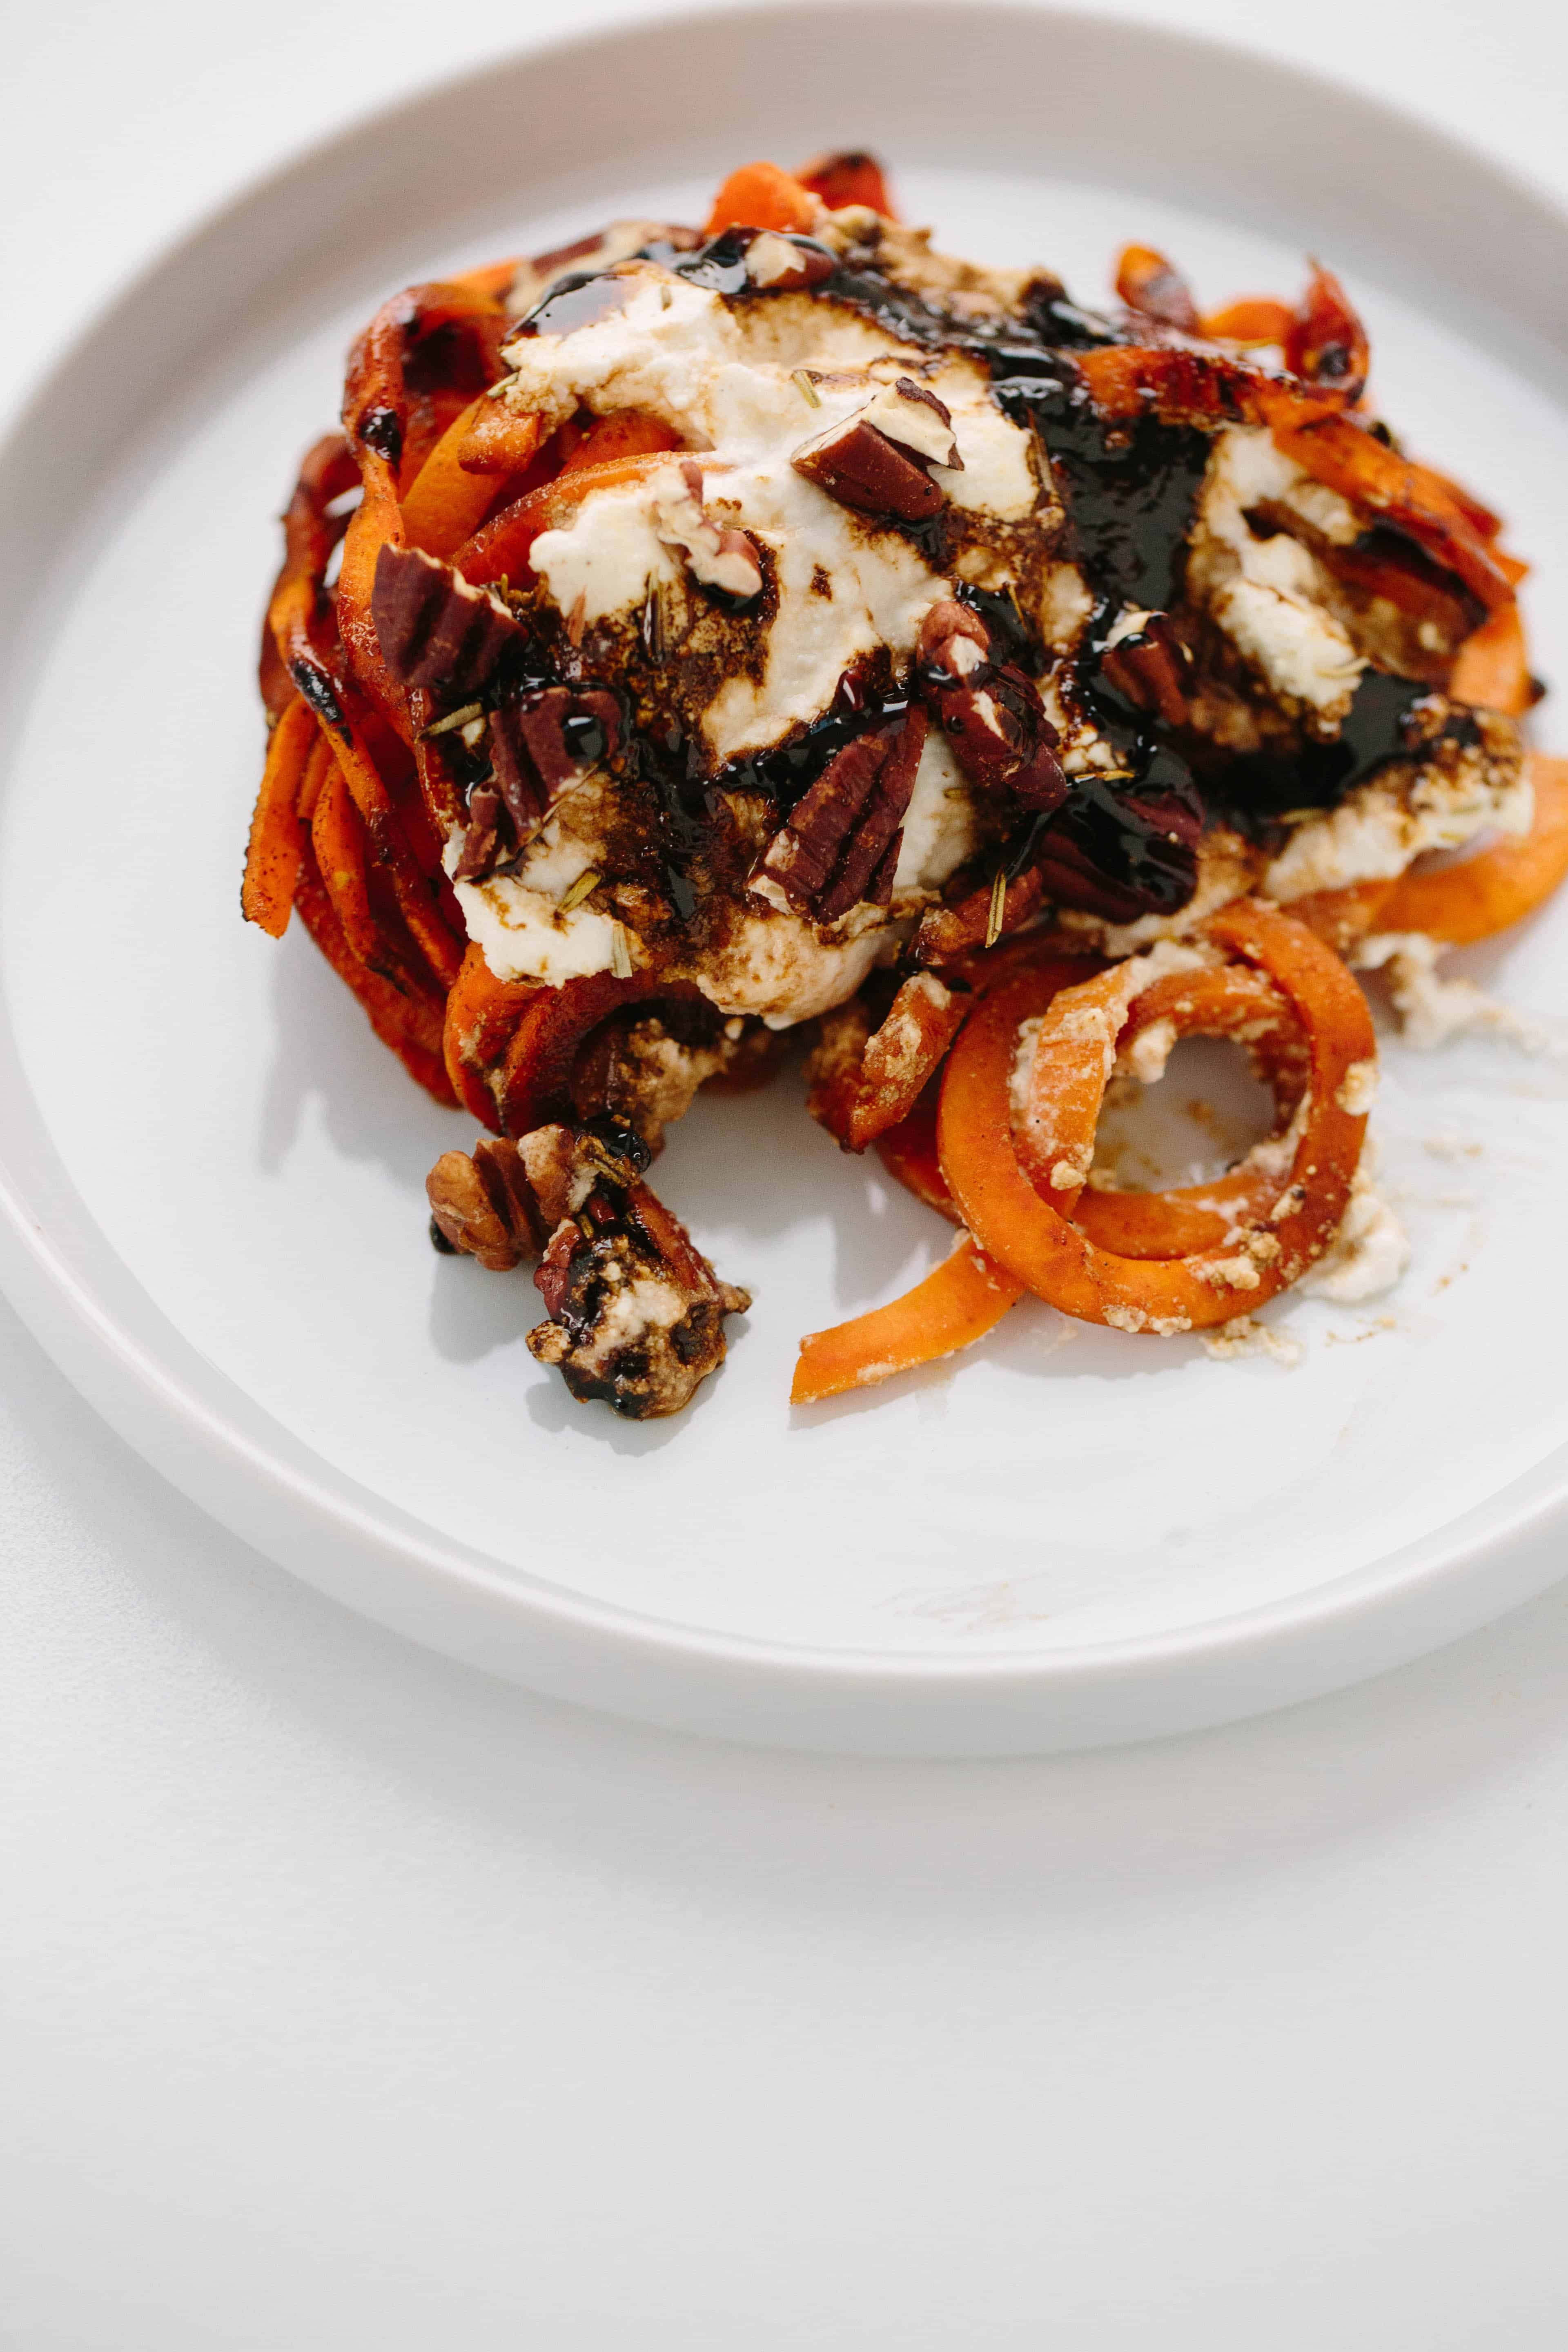 Baked Sweet Potato Noodles with Ricotta and Balsamic Glaze